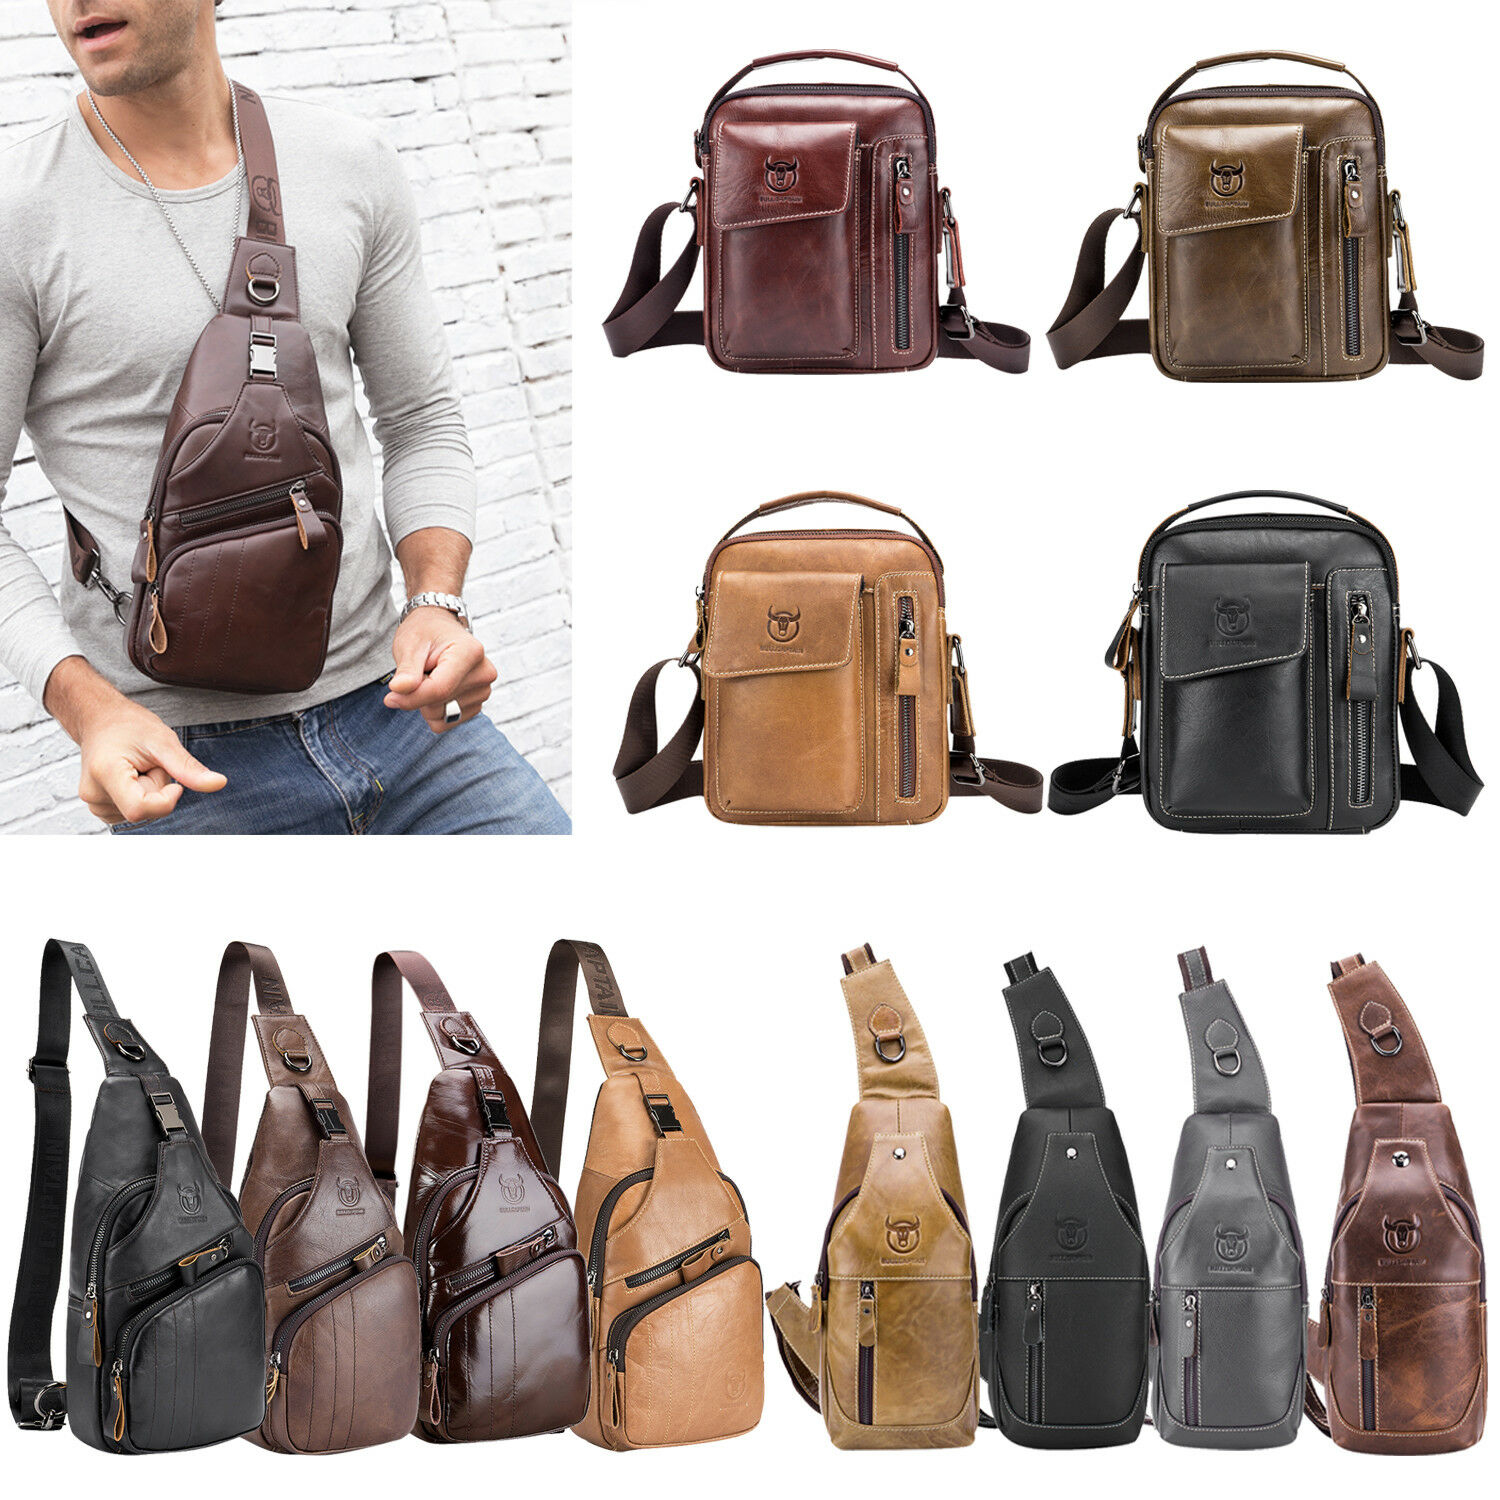 bull-captain-men-leather-sling-shoulder-bag-fanny-waist-chest-pack-crossbody-bag